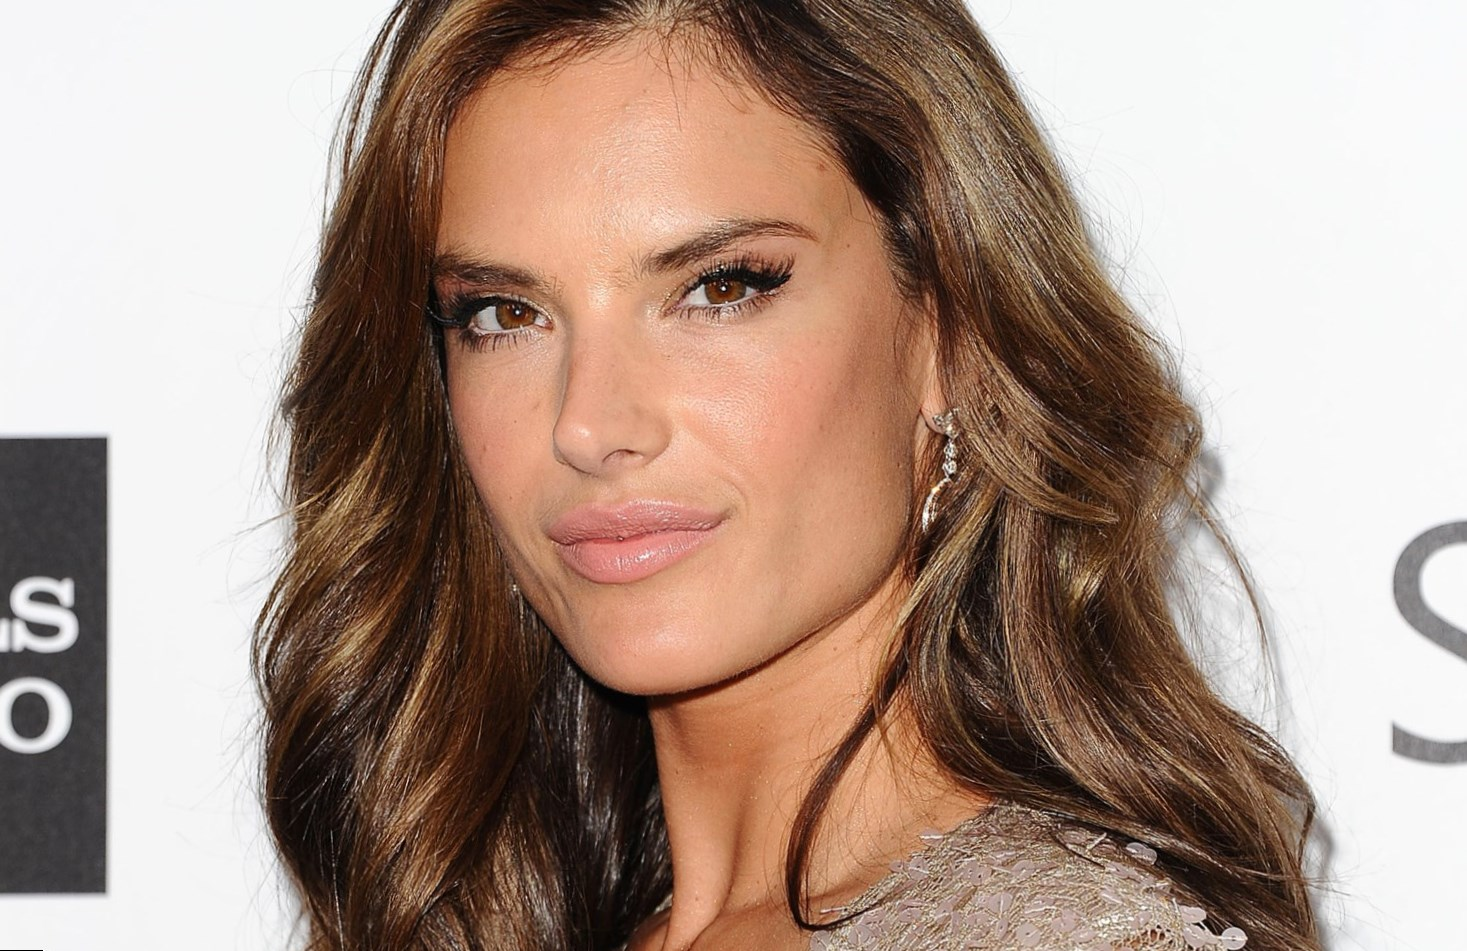 Alessandra Ambrosio Weight Height And Age We Know It All